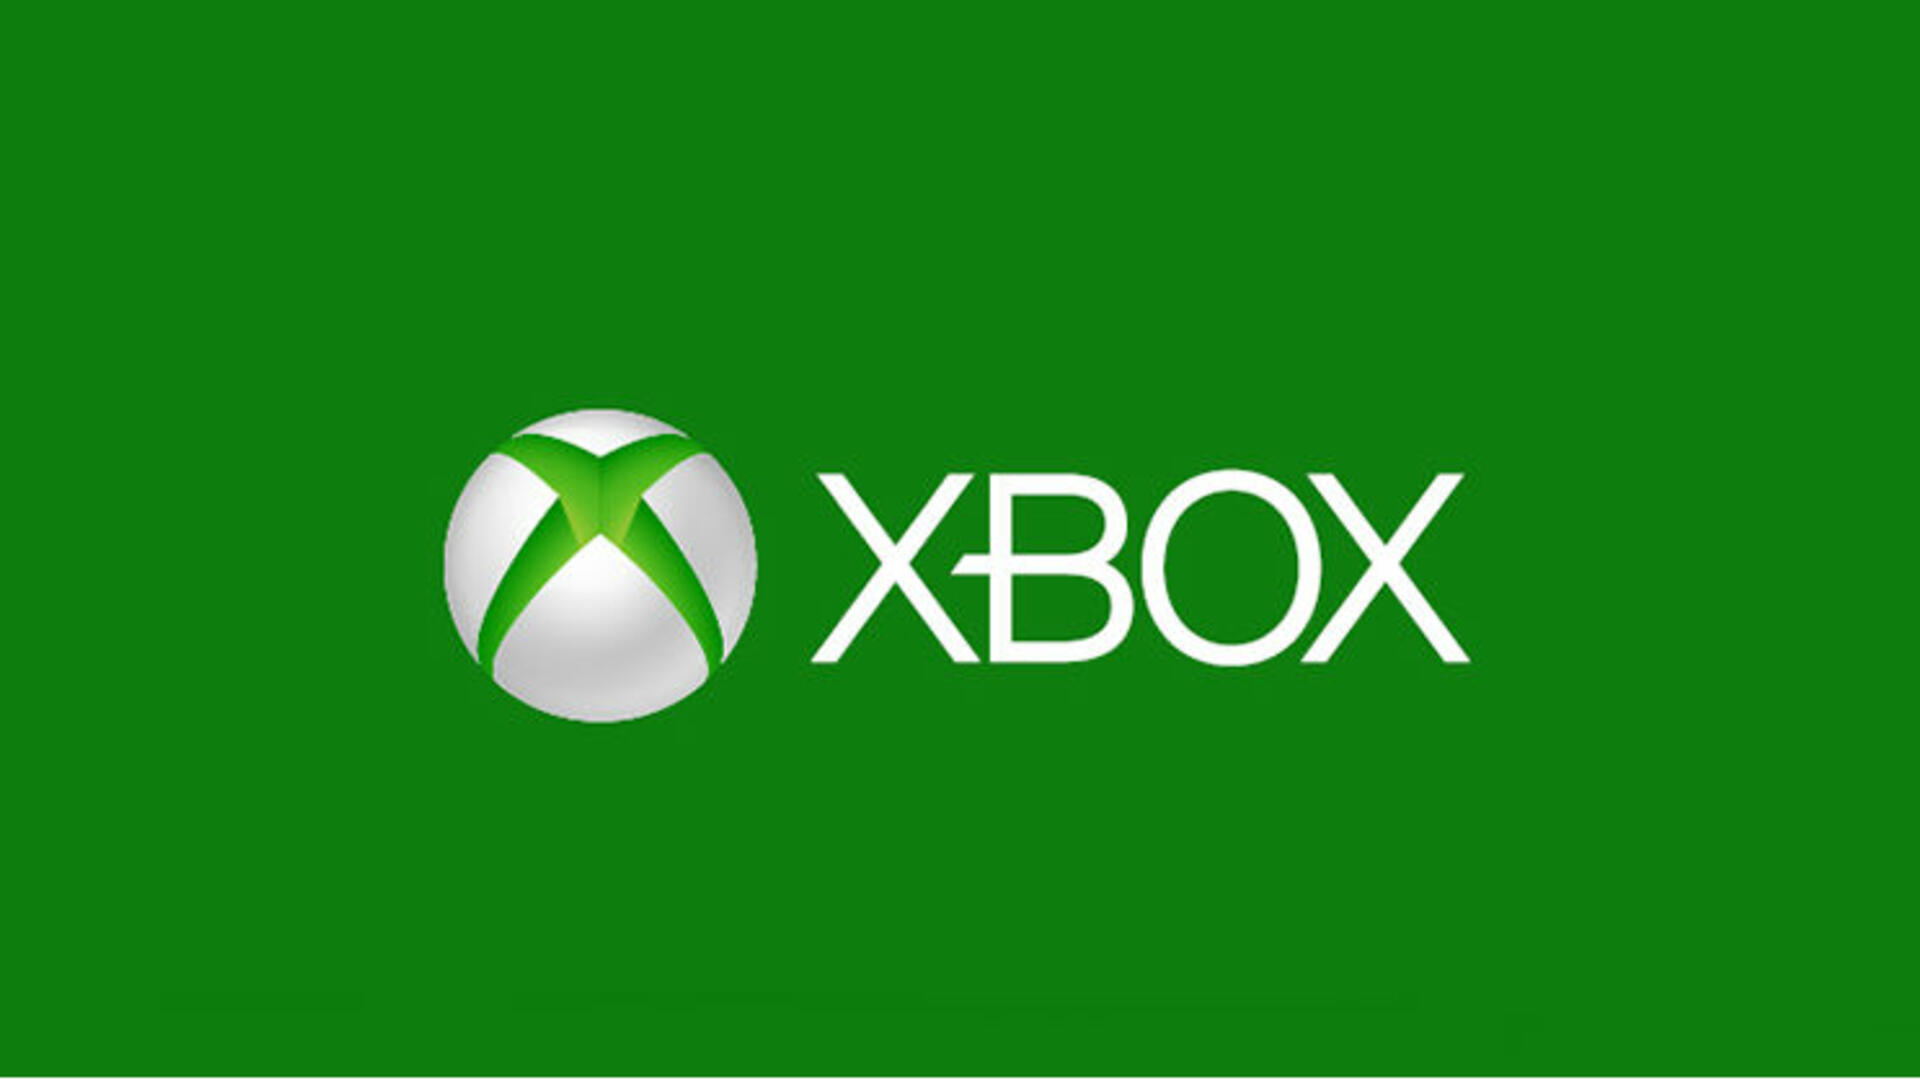 Microsoft E3 Press Conference Recap: Project Scorpio, Xbox One S, Dead Rising 4, and More